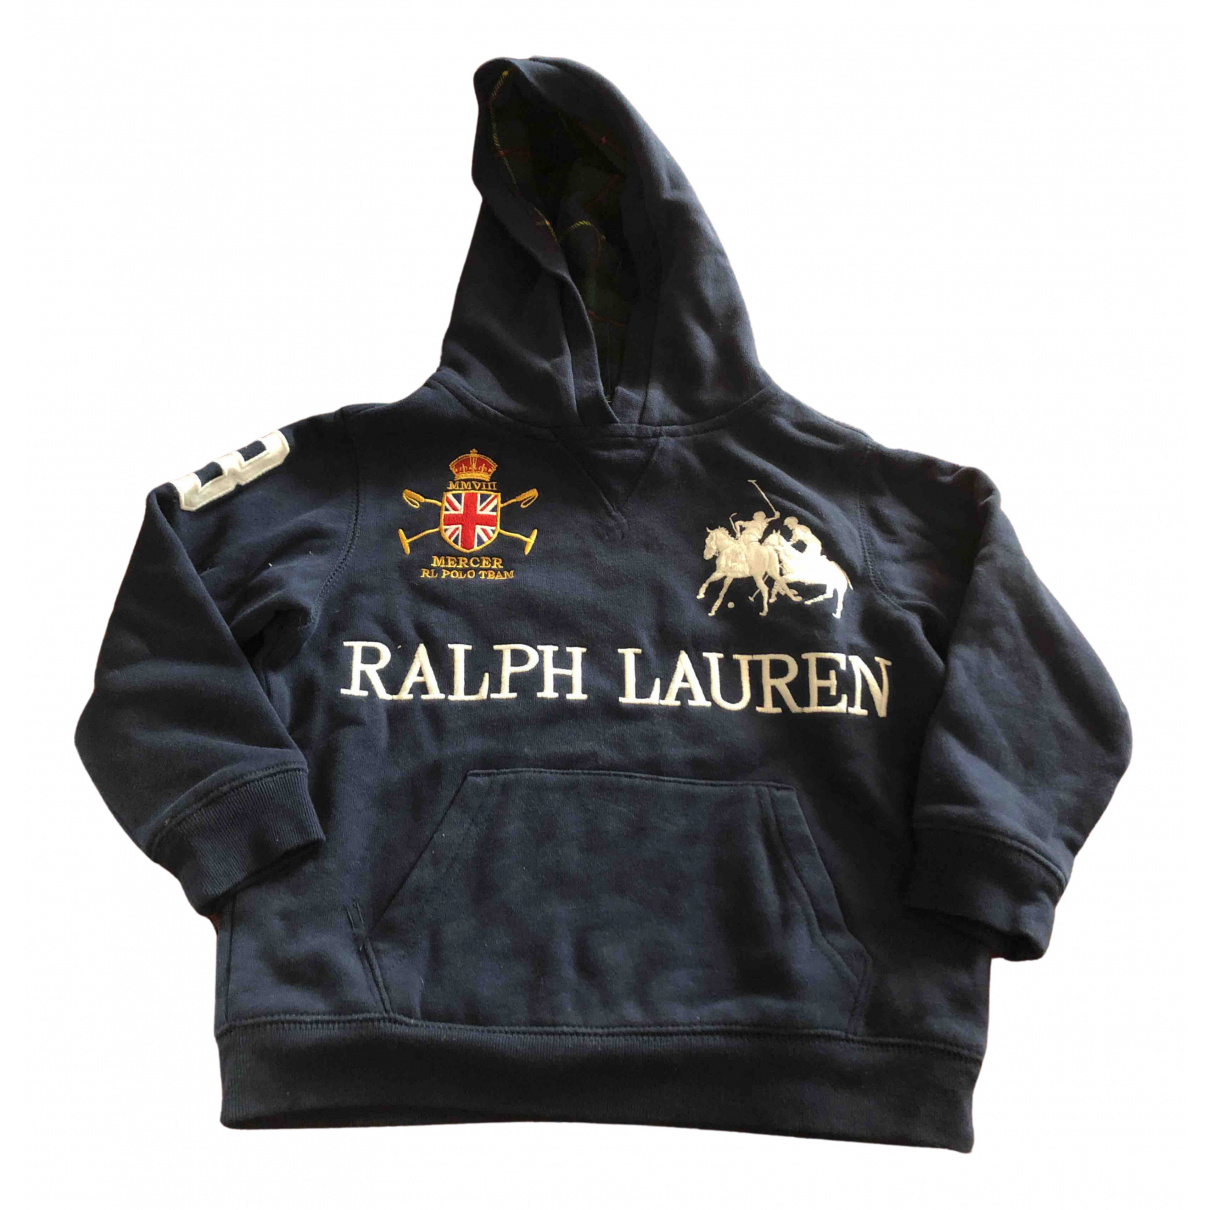 Polo Ralph Lauren N Blue Cotton Knitwear for Kids 3 years - up to 98cm FR